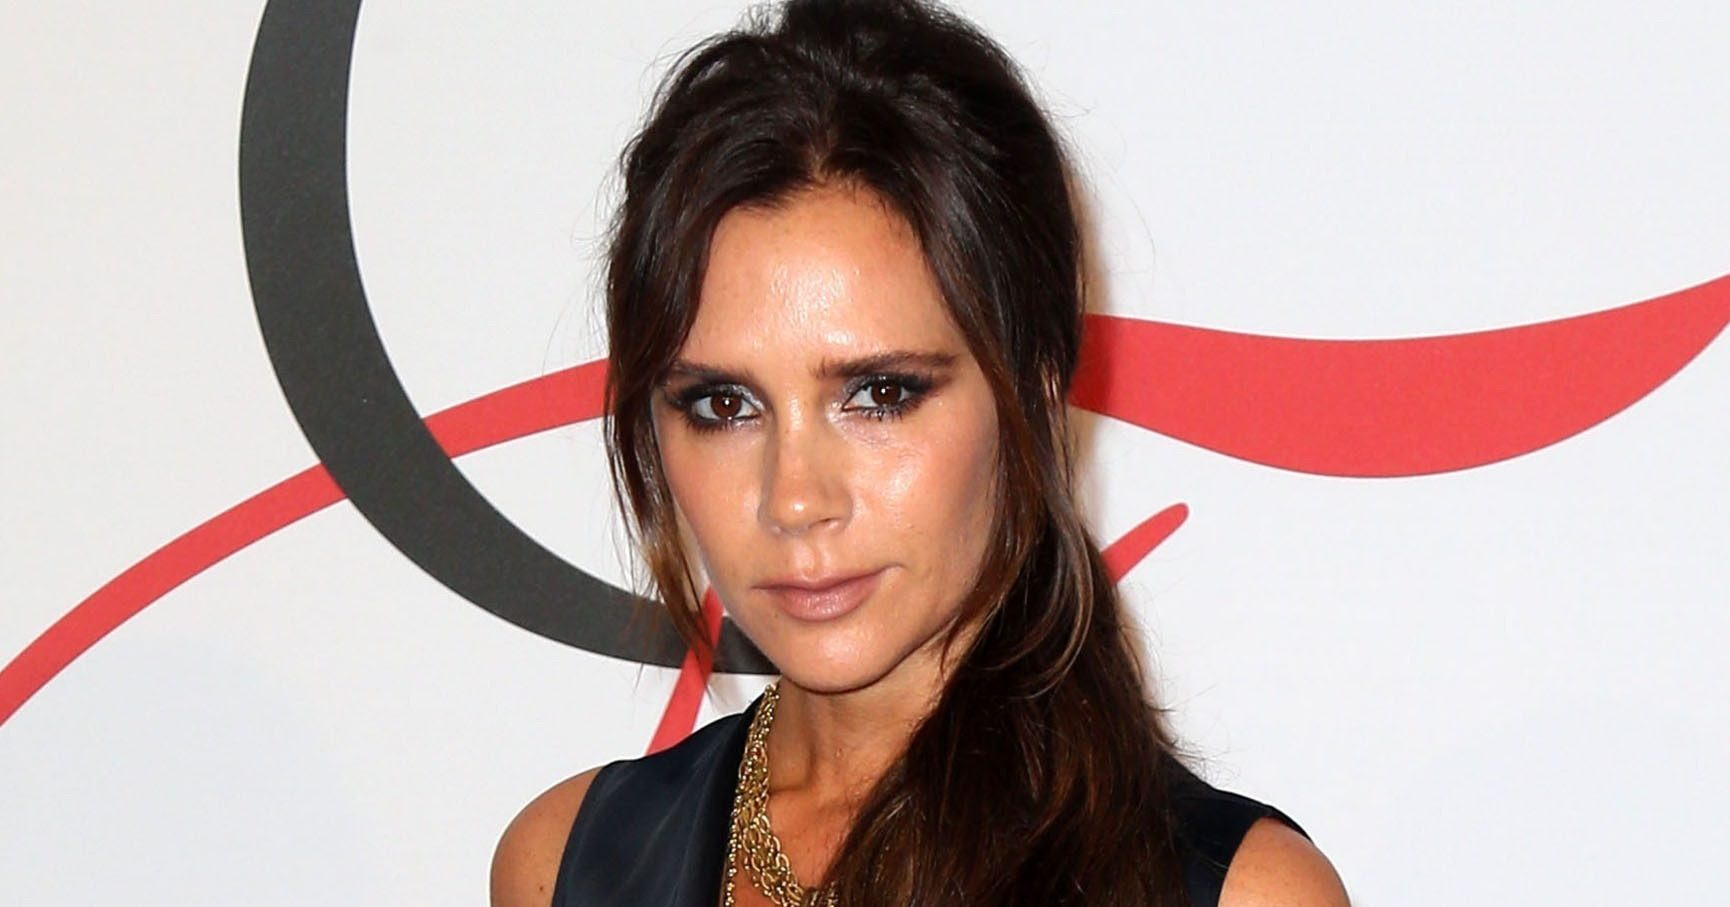 Victoria Beckham's hair accessory will only cost you 30p